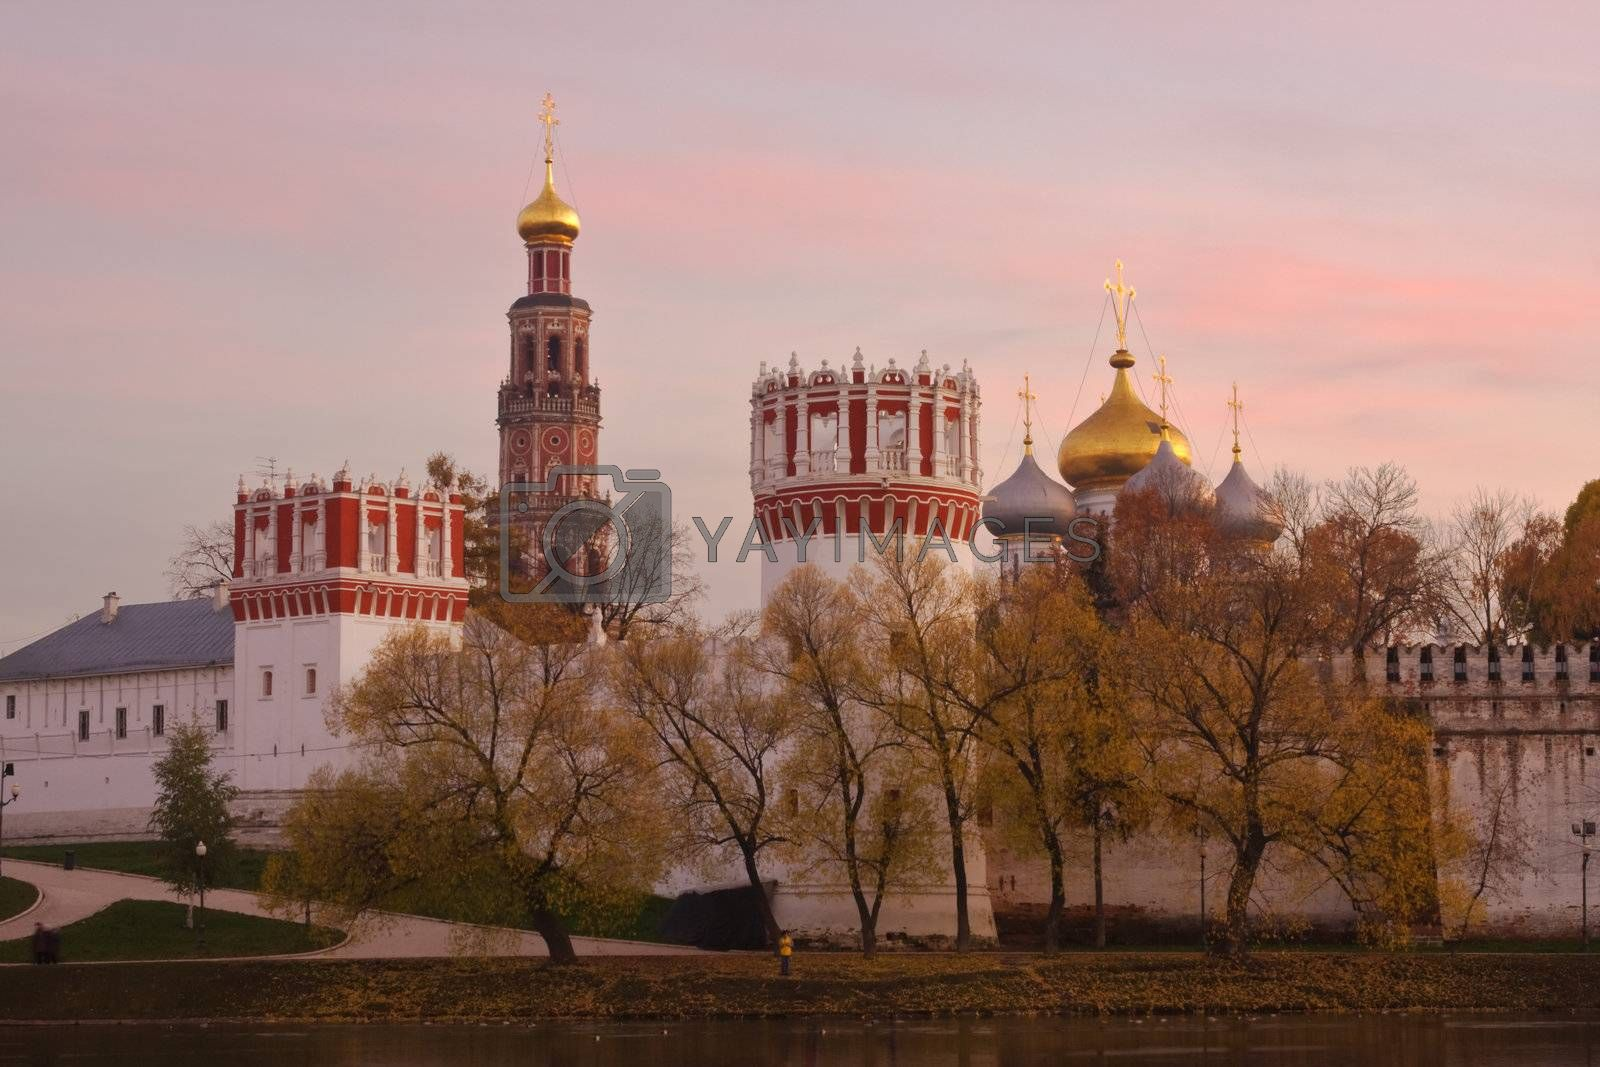 Novodevichiy monastery in Moscow (Russia) at sunset